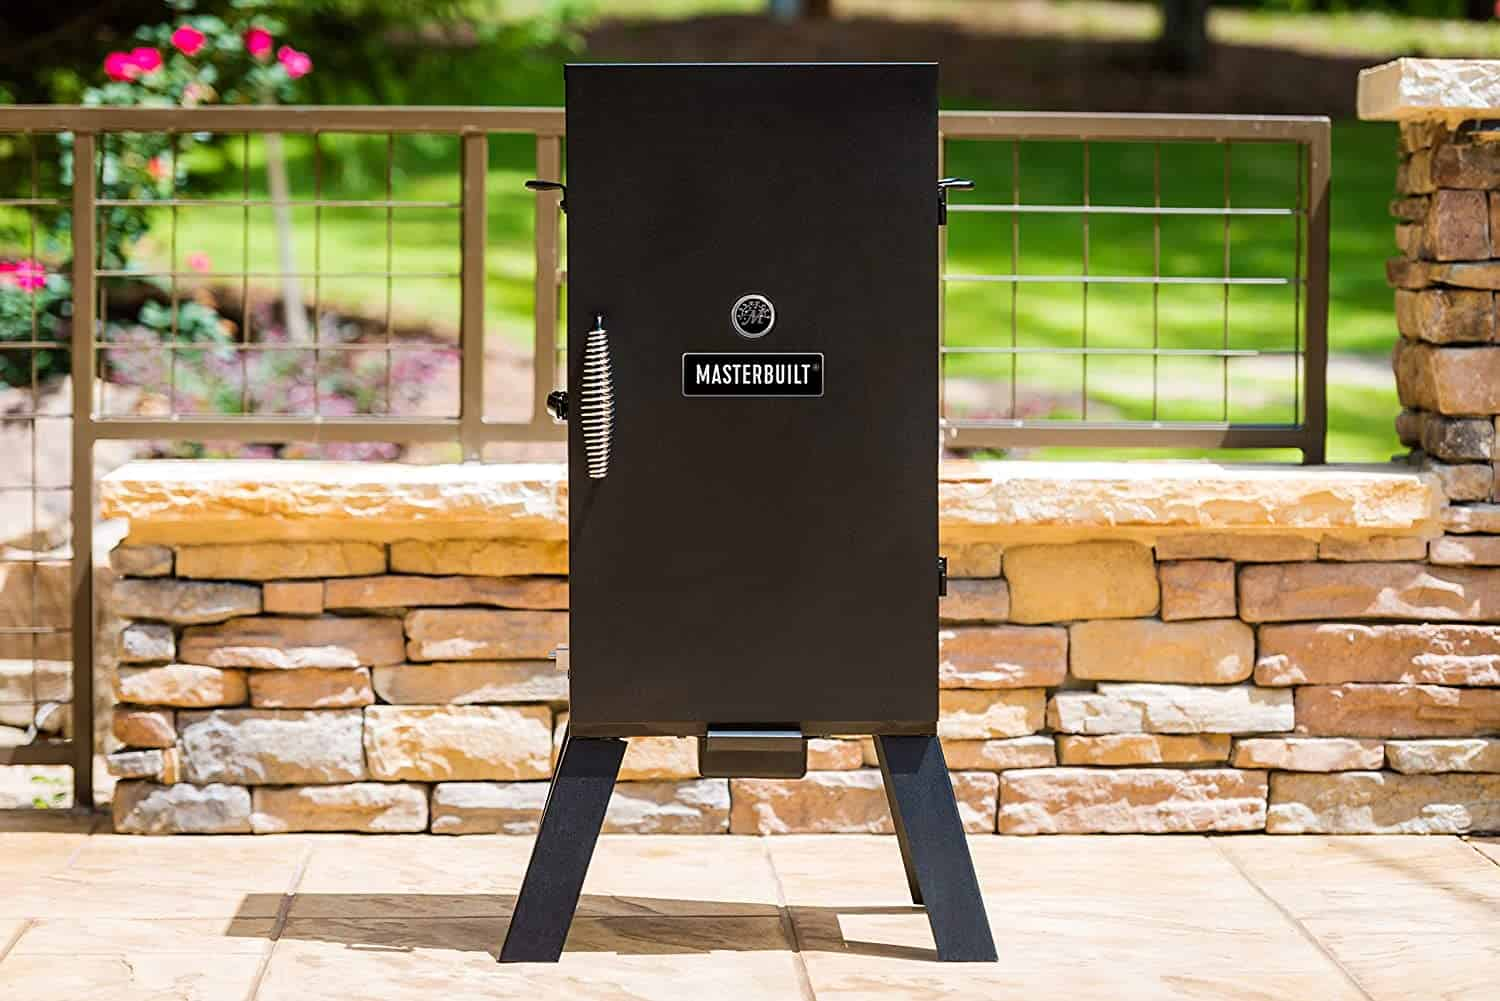 Best electric smoker for ribs (for beginners)- Masterbuilt MB20070210 in garden